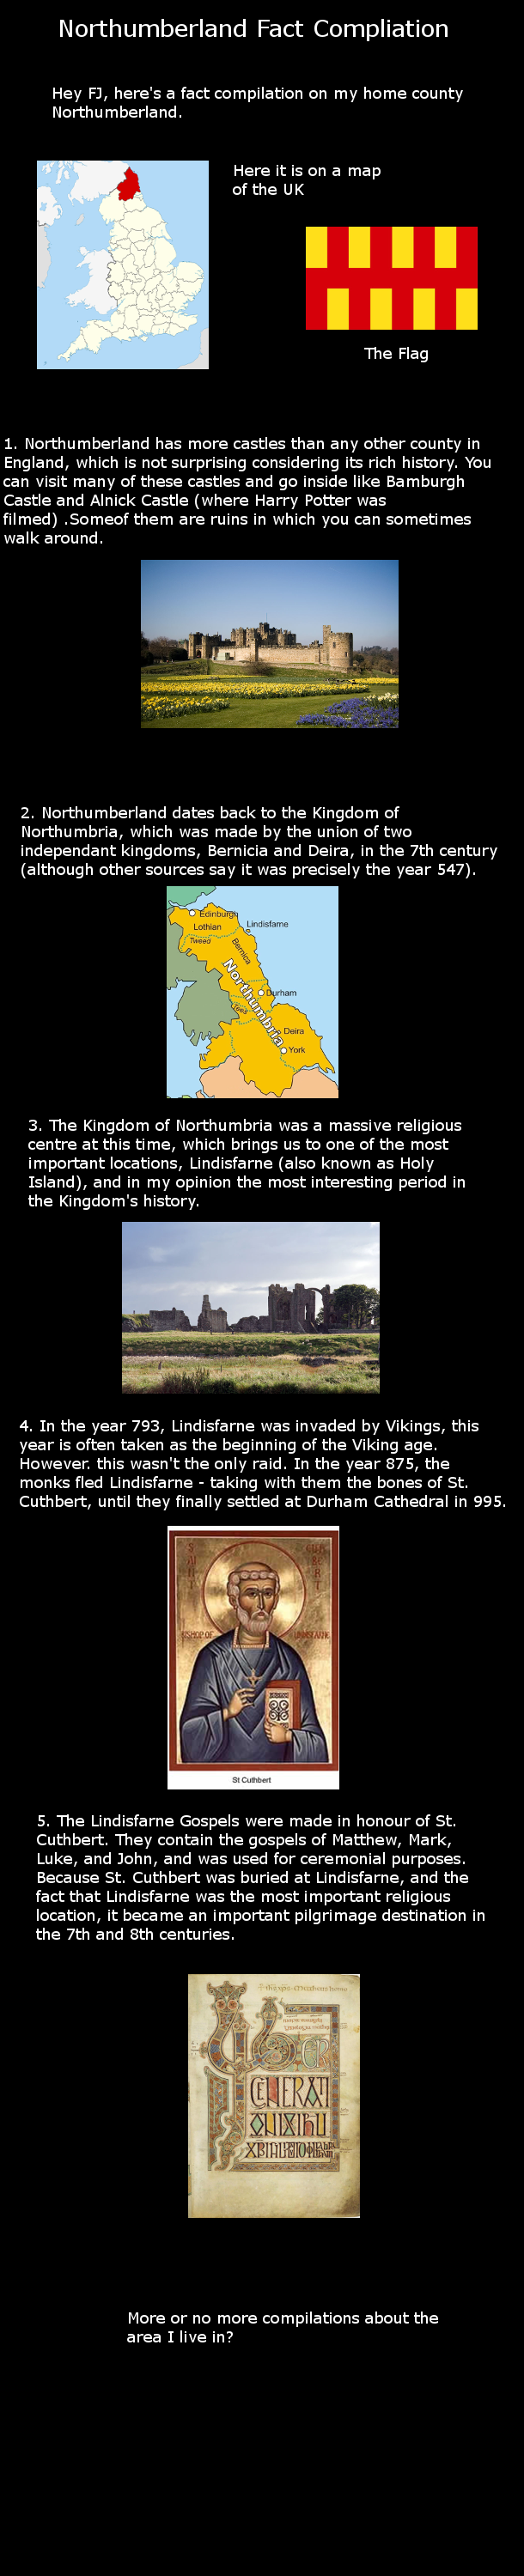 Northumberland Compliation. . Northumberland Fact Compilation Hey Fil, here' s a fact compilation on my home county Northumberland. Here it is on a map of the U